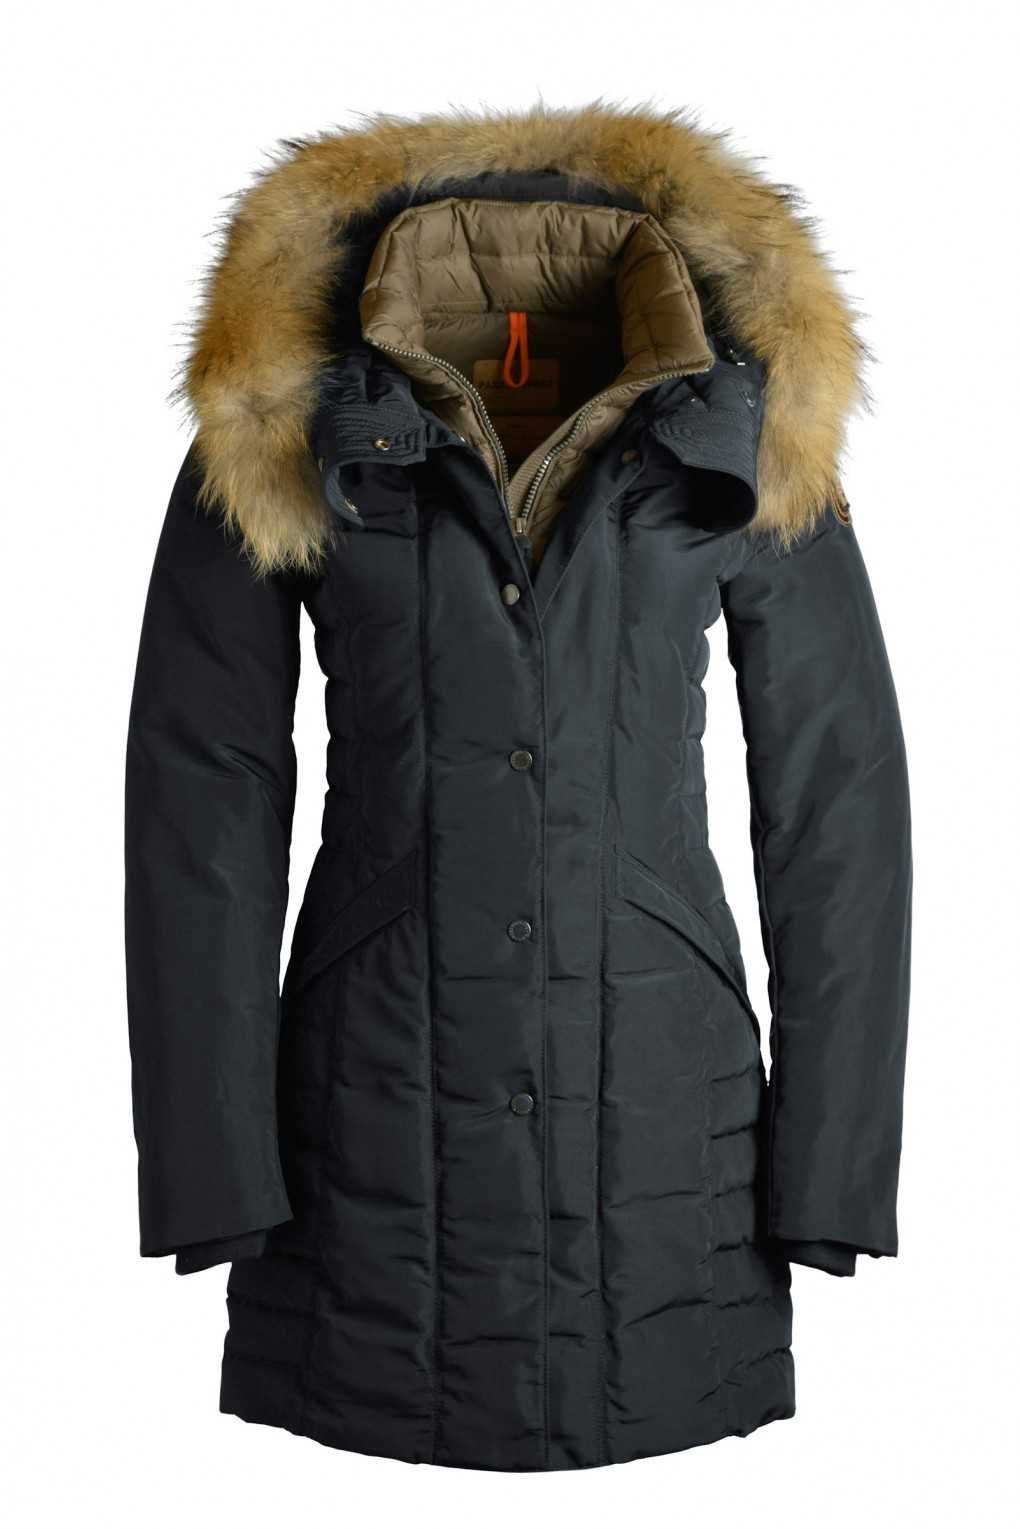 Parajumpers Womens Jackets Canada - Shop Discount Parajumpers Long Bear Sale ,Parajumpers Coats Store Online And Parajumpers Sale Man for Women,Men And High ...